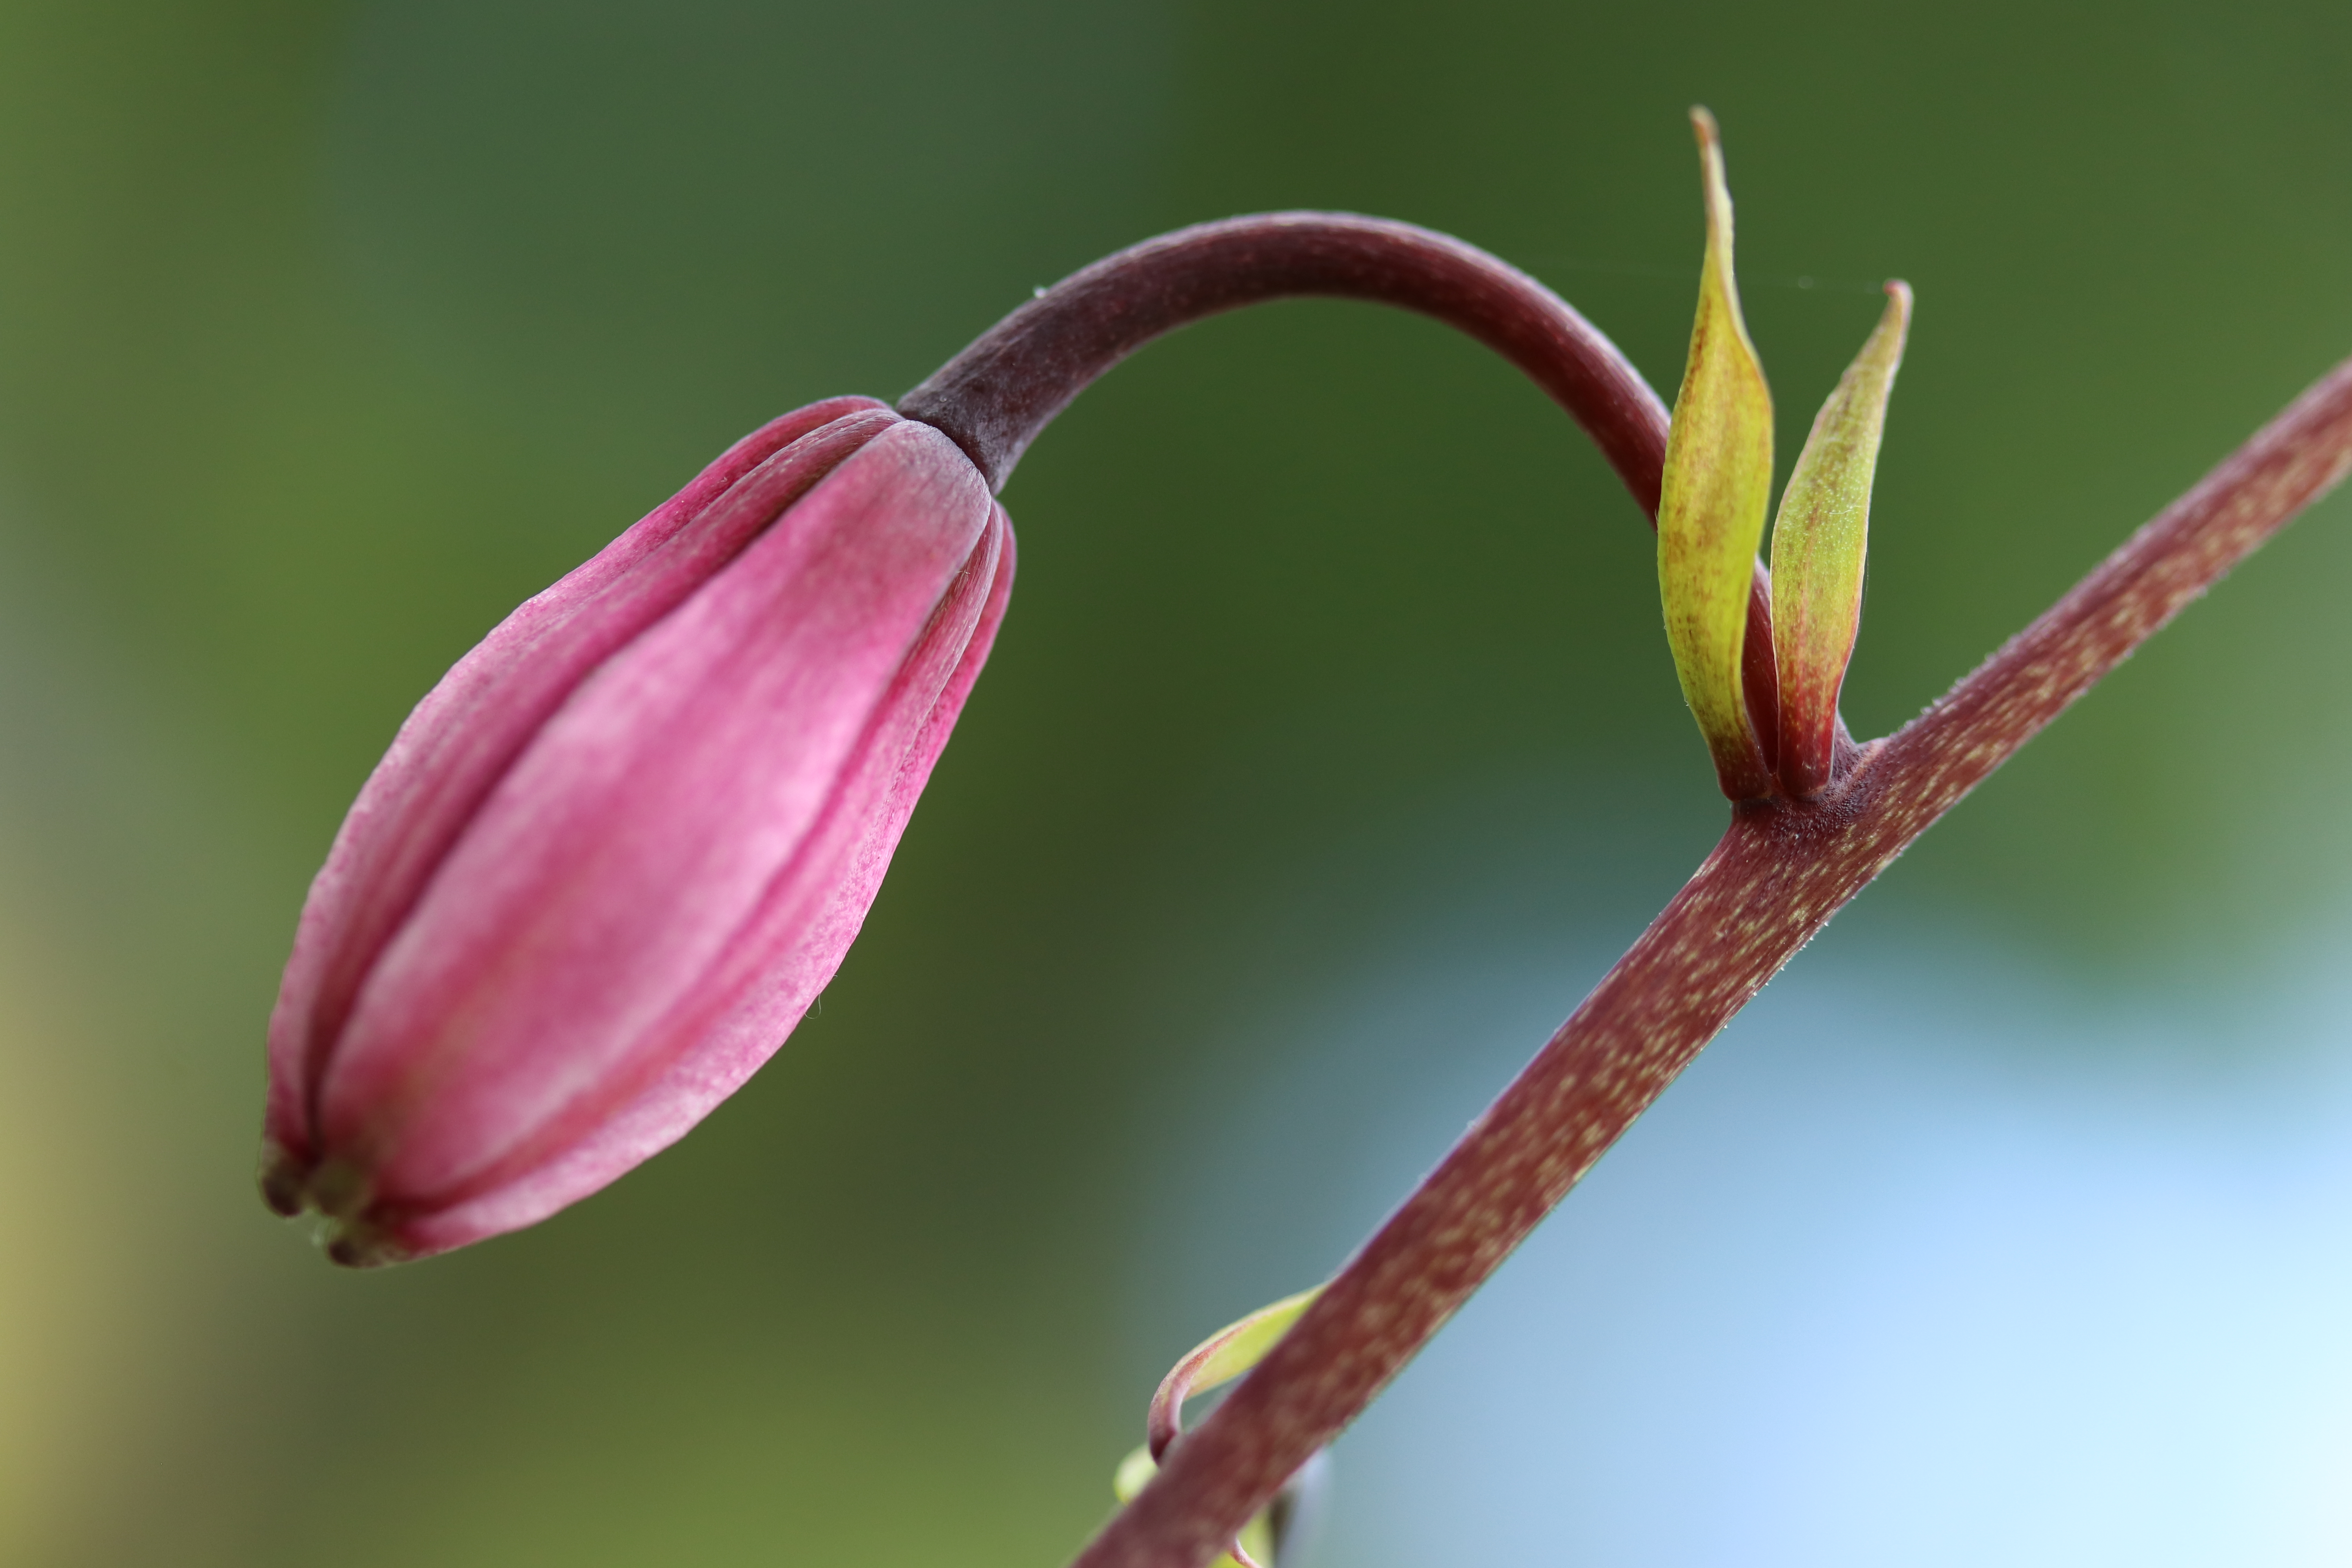 Flower bud with tiny leaves